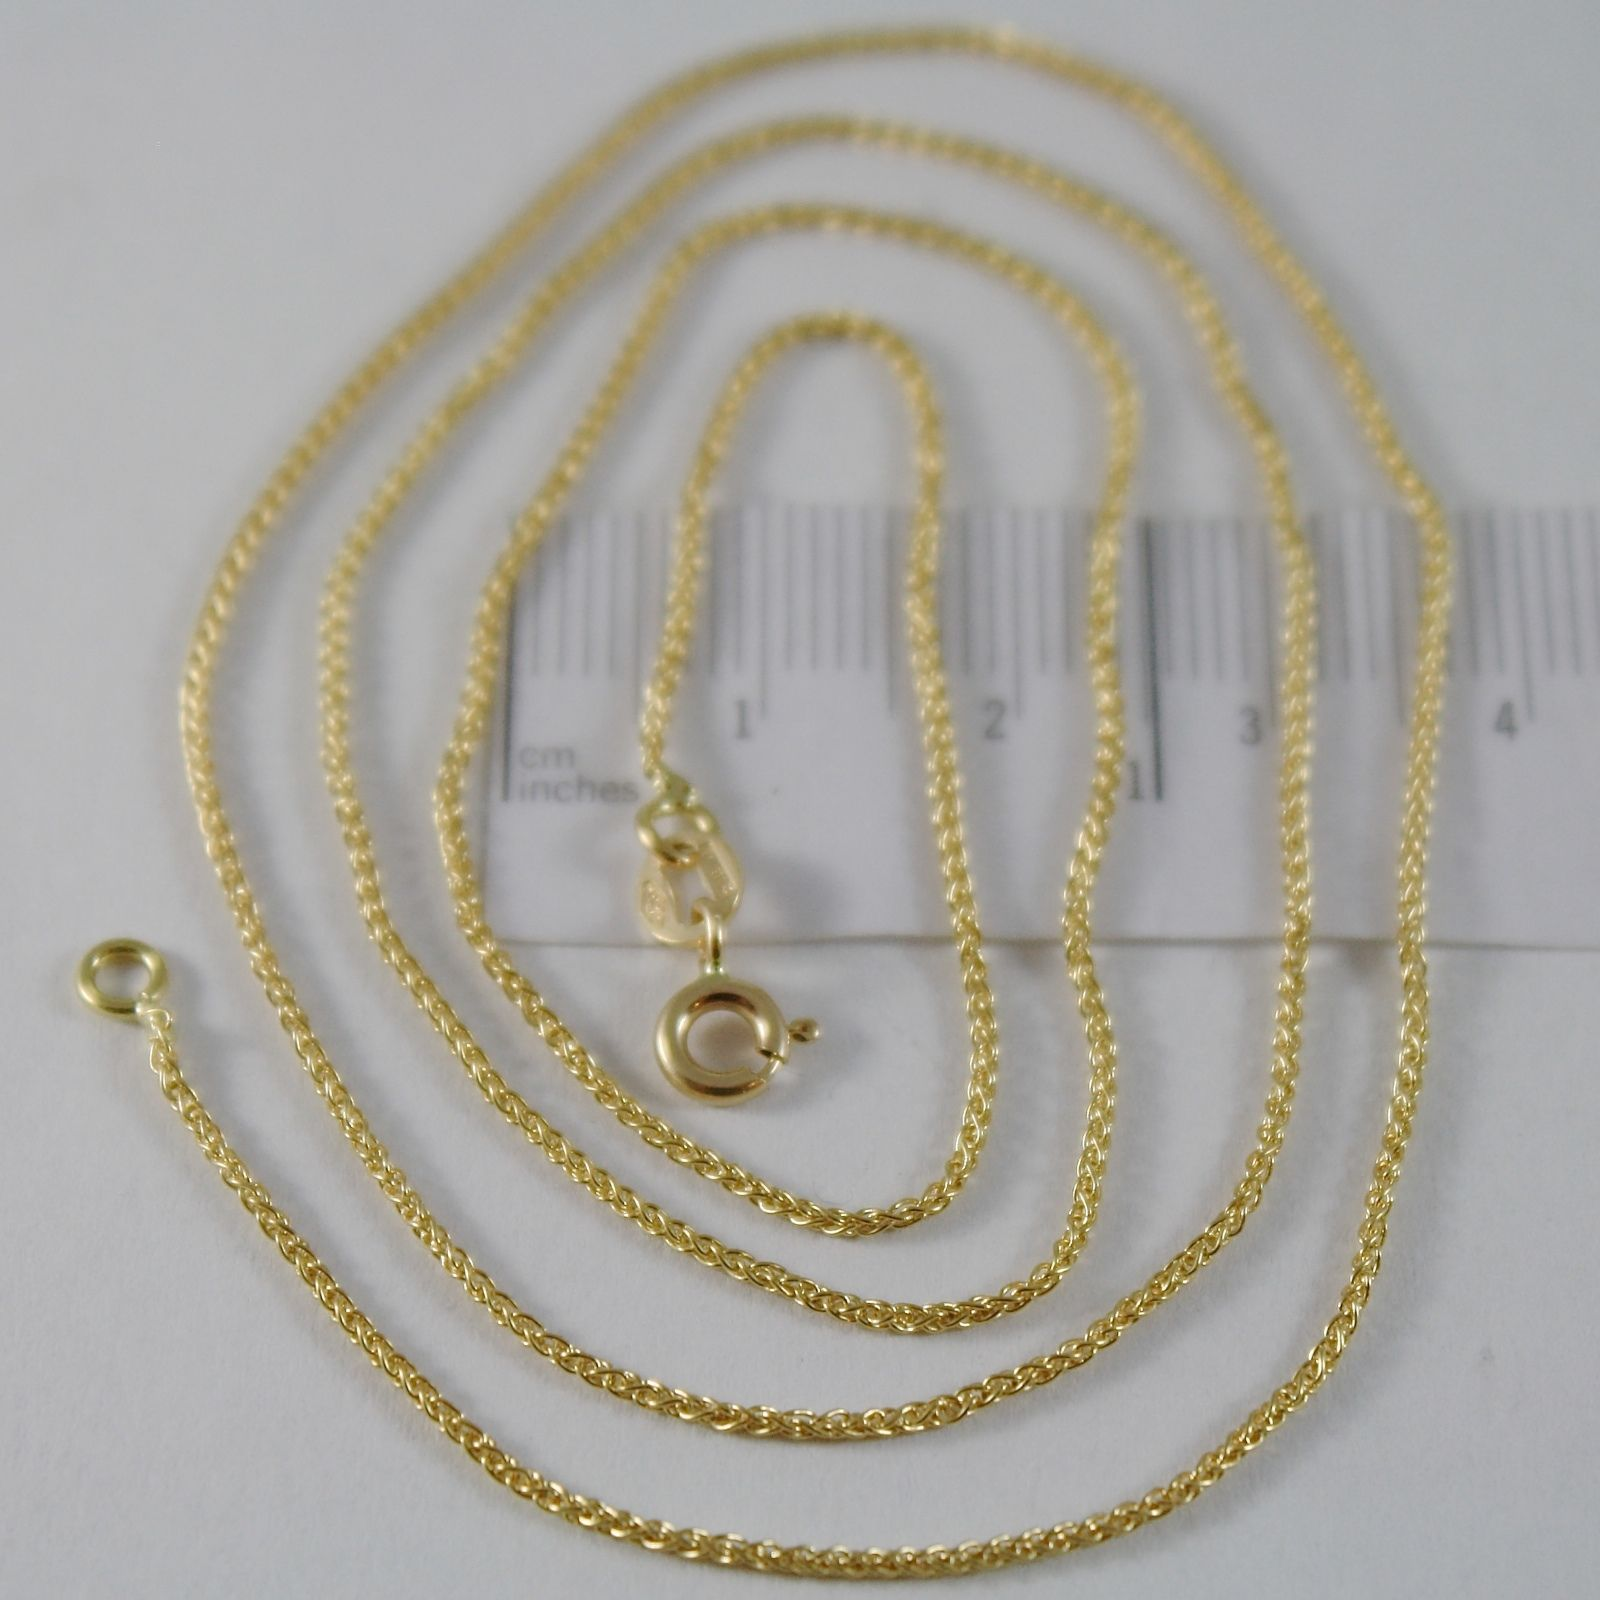 SOLID 18K YELLOW GOLD SPIGA WHEAT EAR CHAIN 24 INCHES, 1.2 MM, MADE IN ITALY